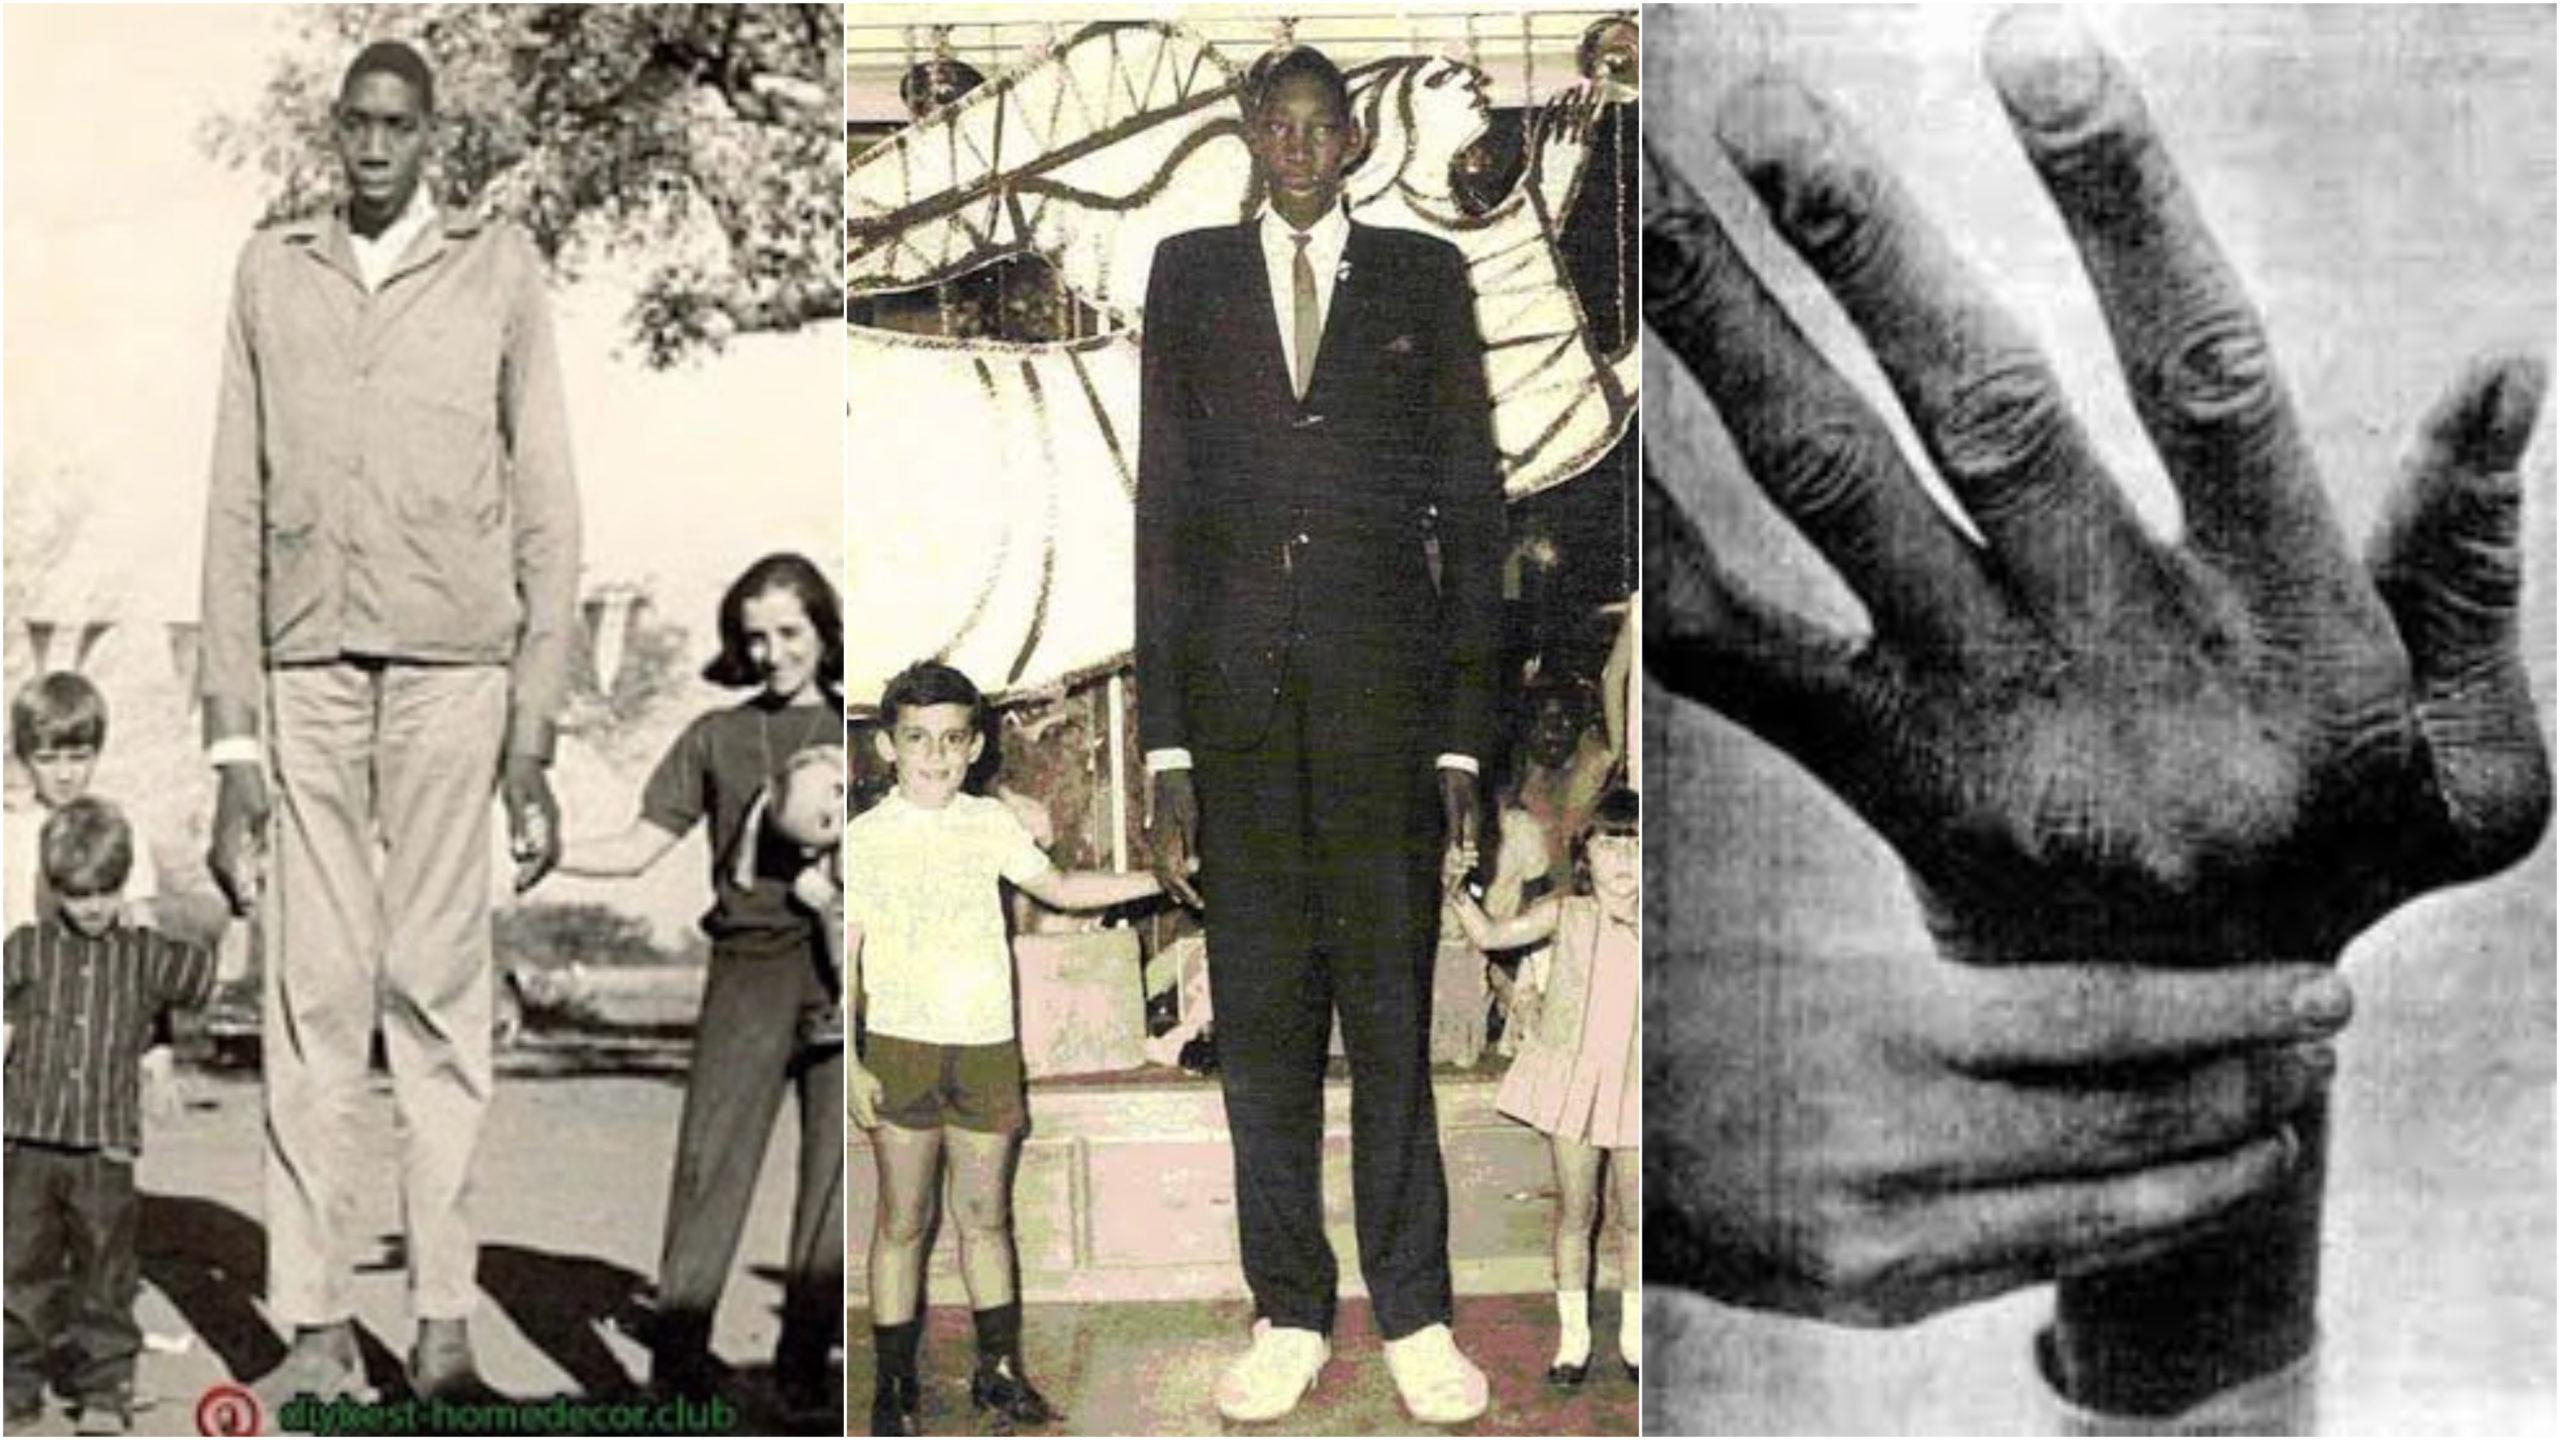 The tallest African descent in the recorded history. John Rogan 8 ft 9 in (2m 67cm)